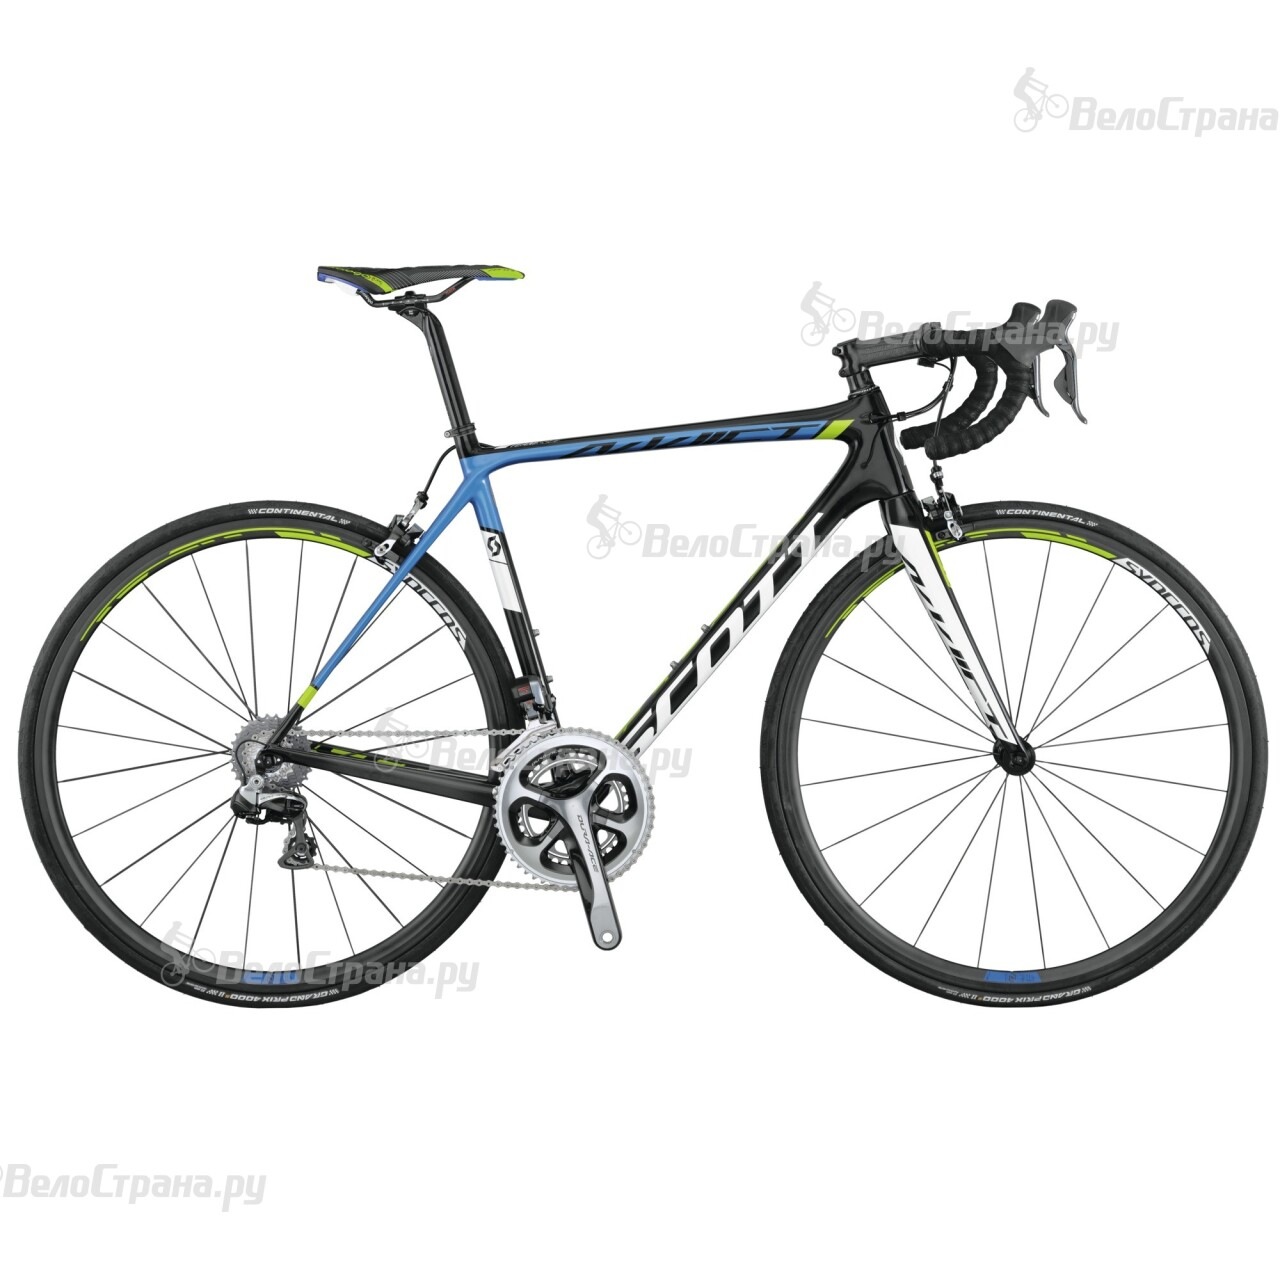 Велосипед Scott Addict Team Issue DI2 (2015)